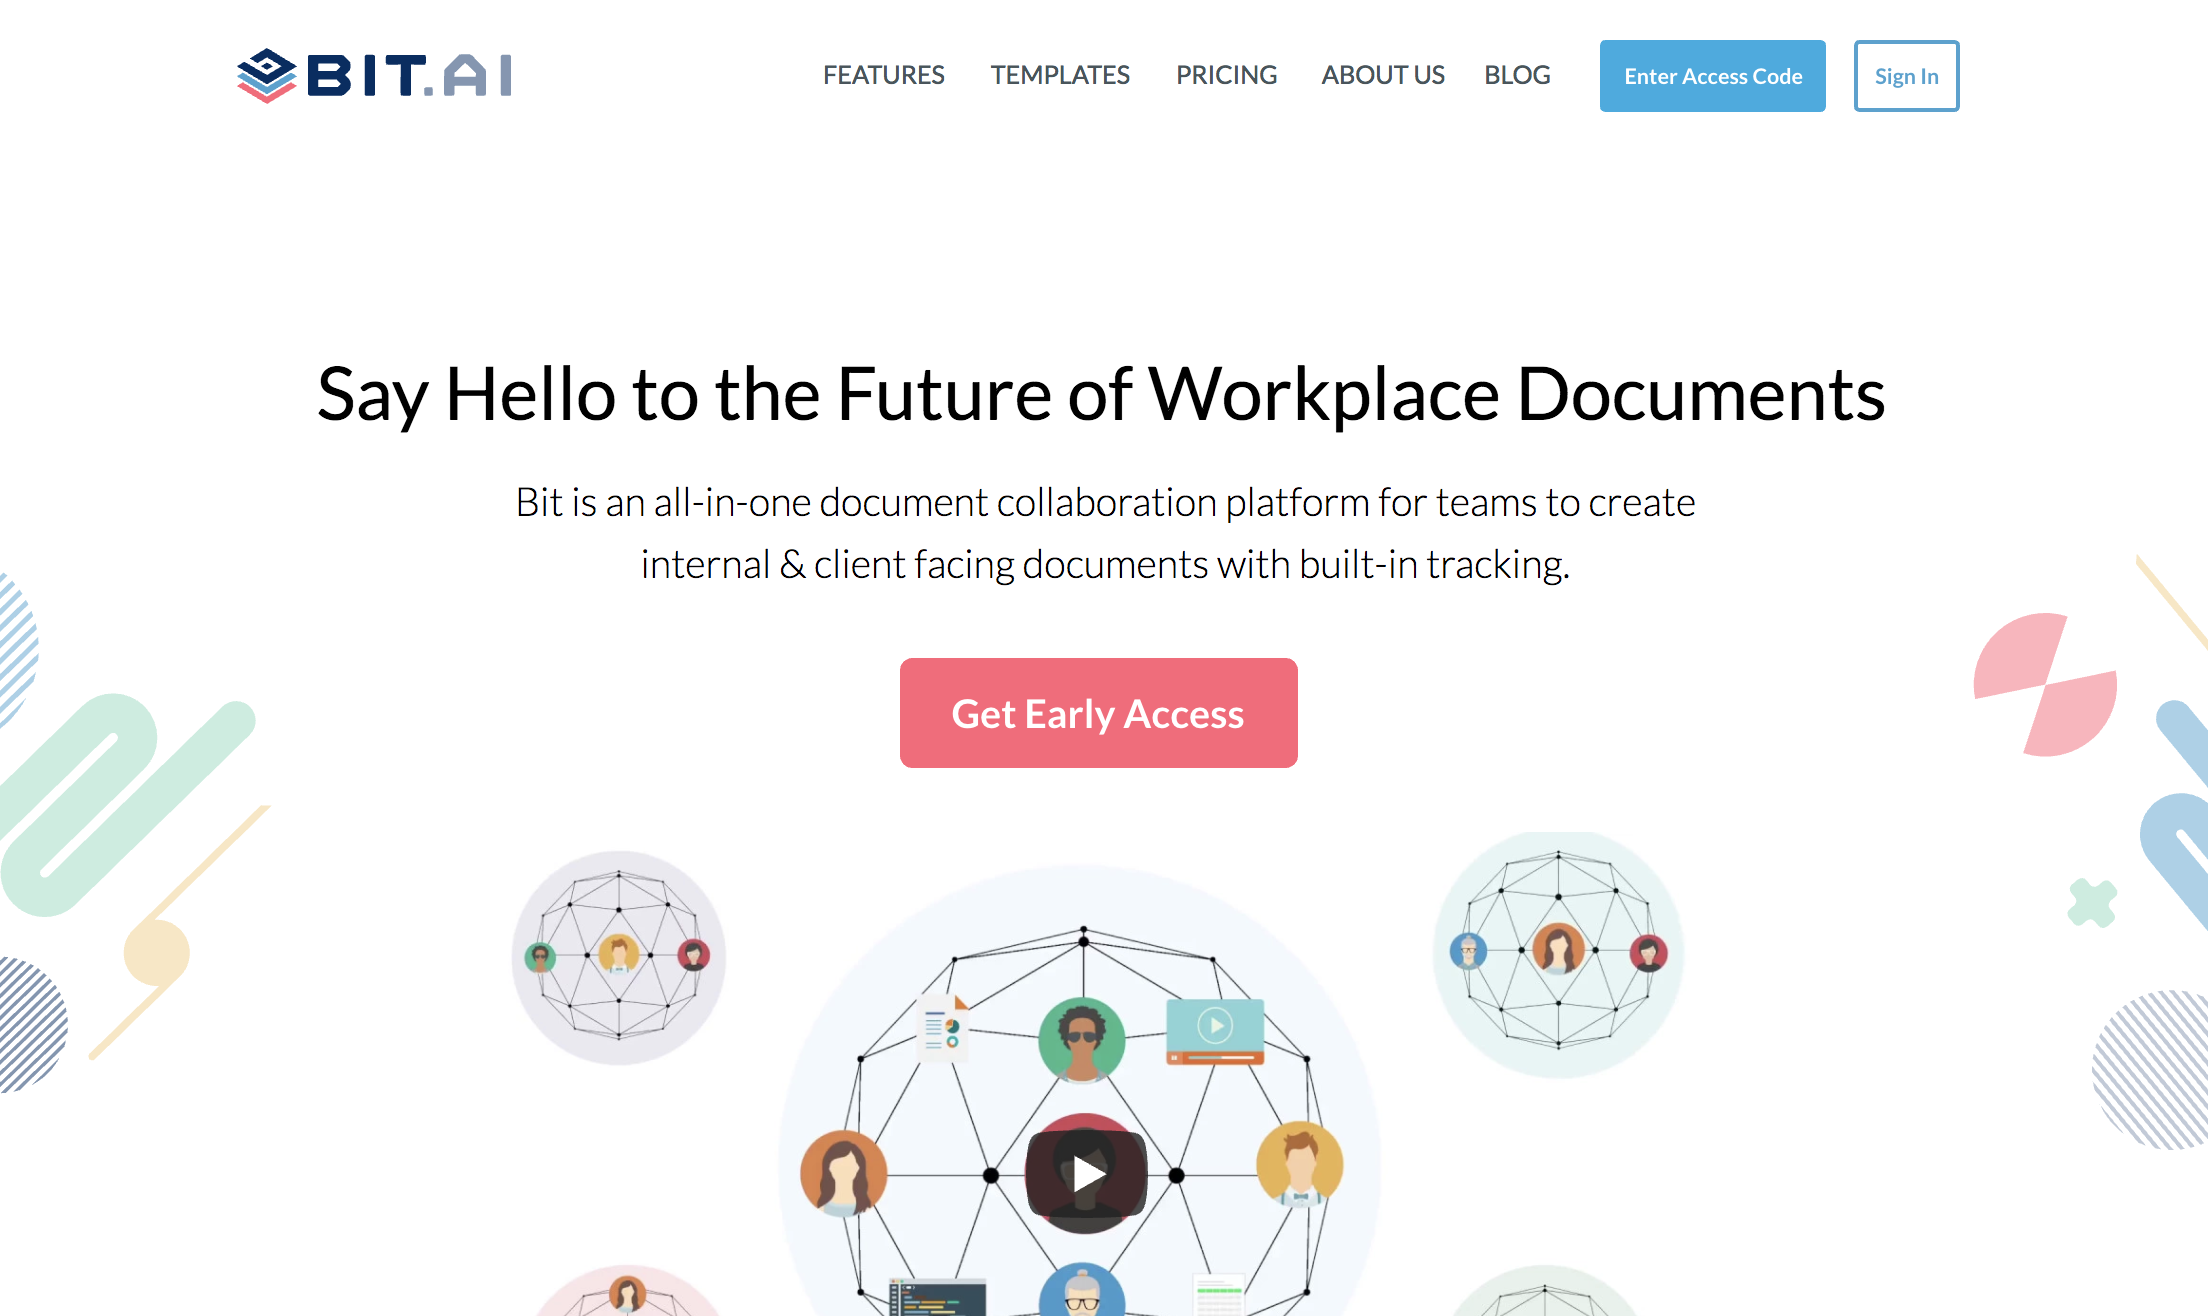 Bit.ai for collaboration of teams